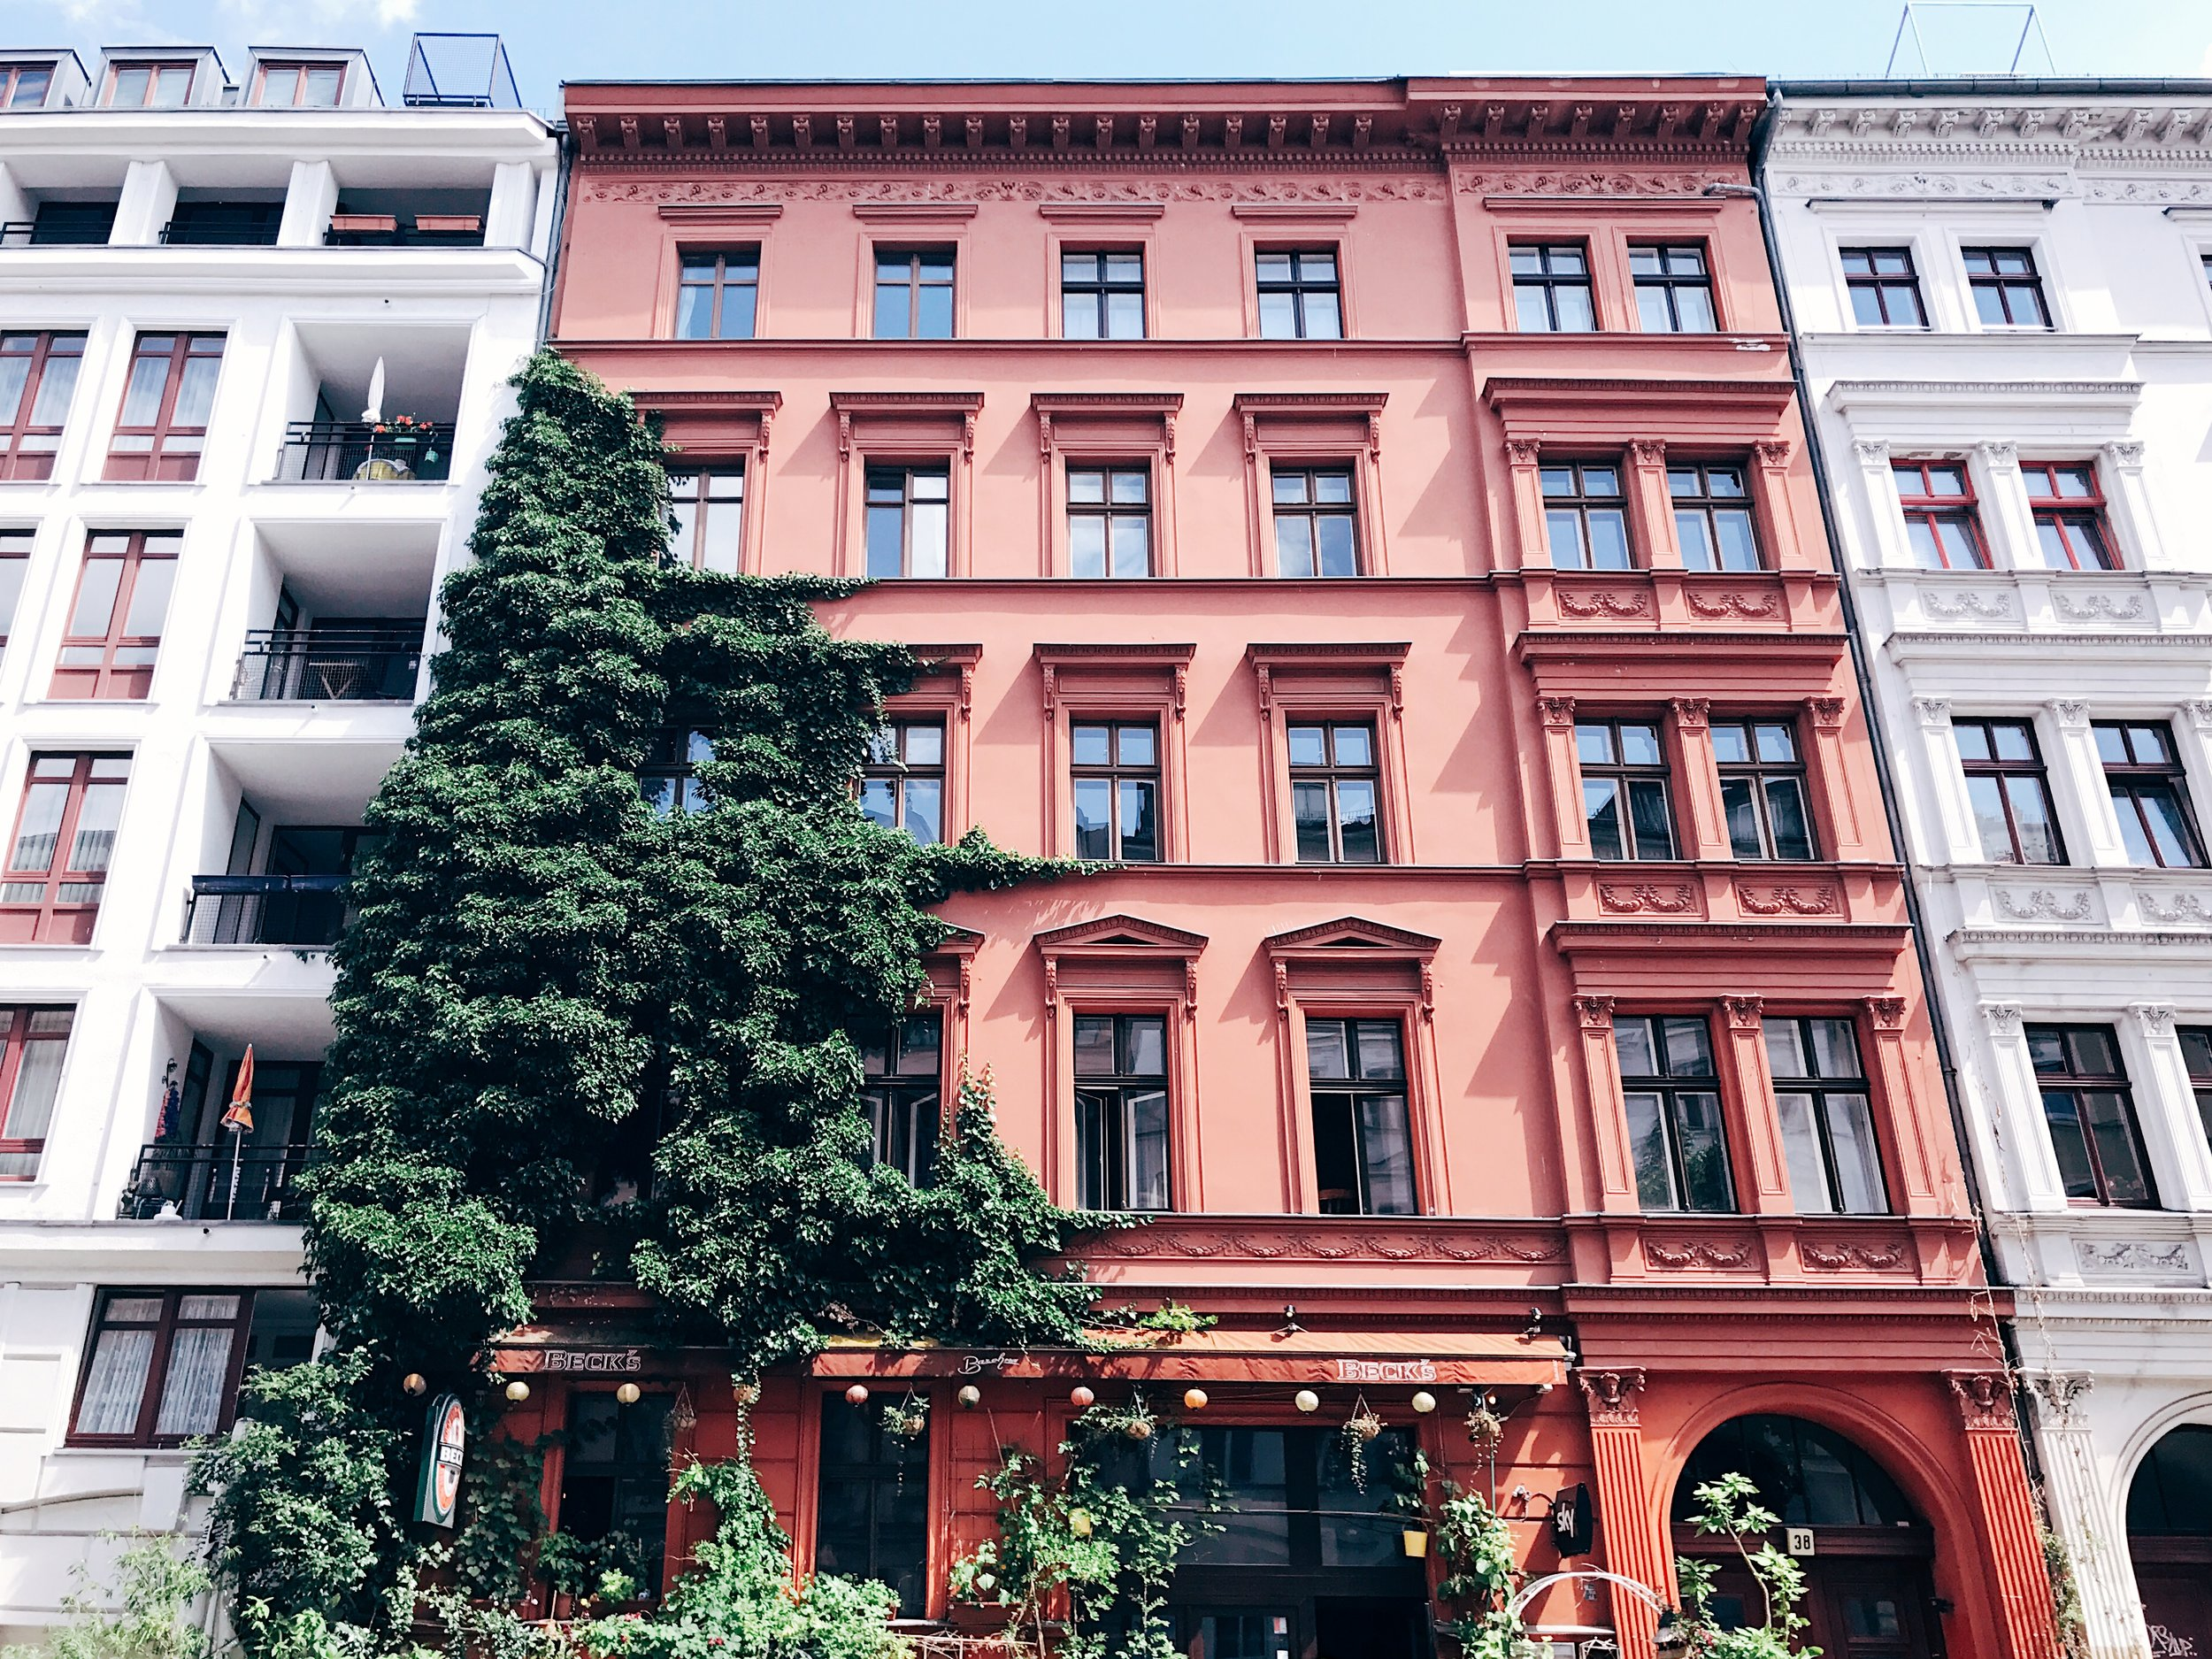 Kreuzberg neighborhood, where you can find Ernst bar and many other great restaurants and bars